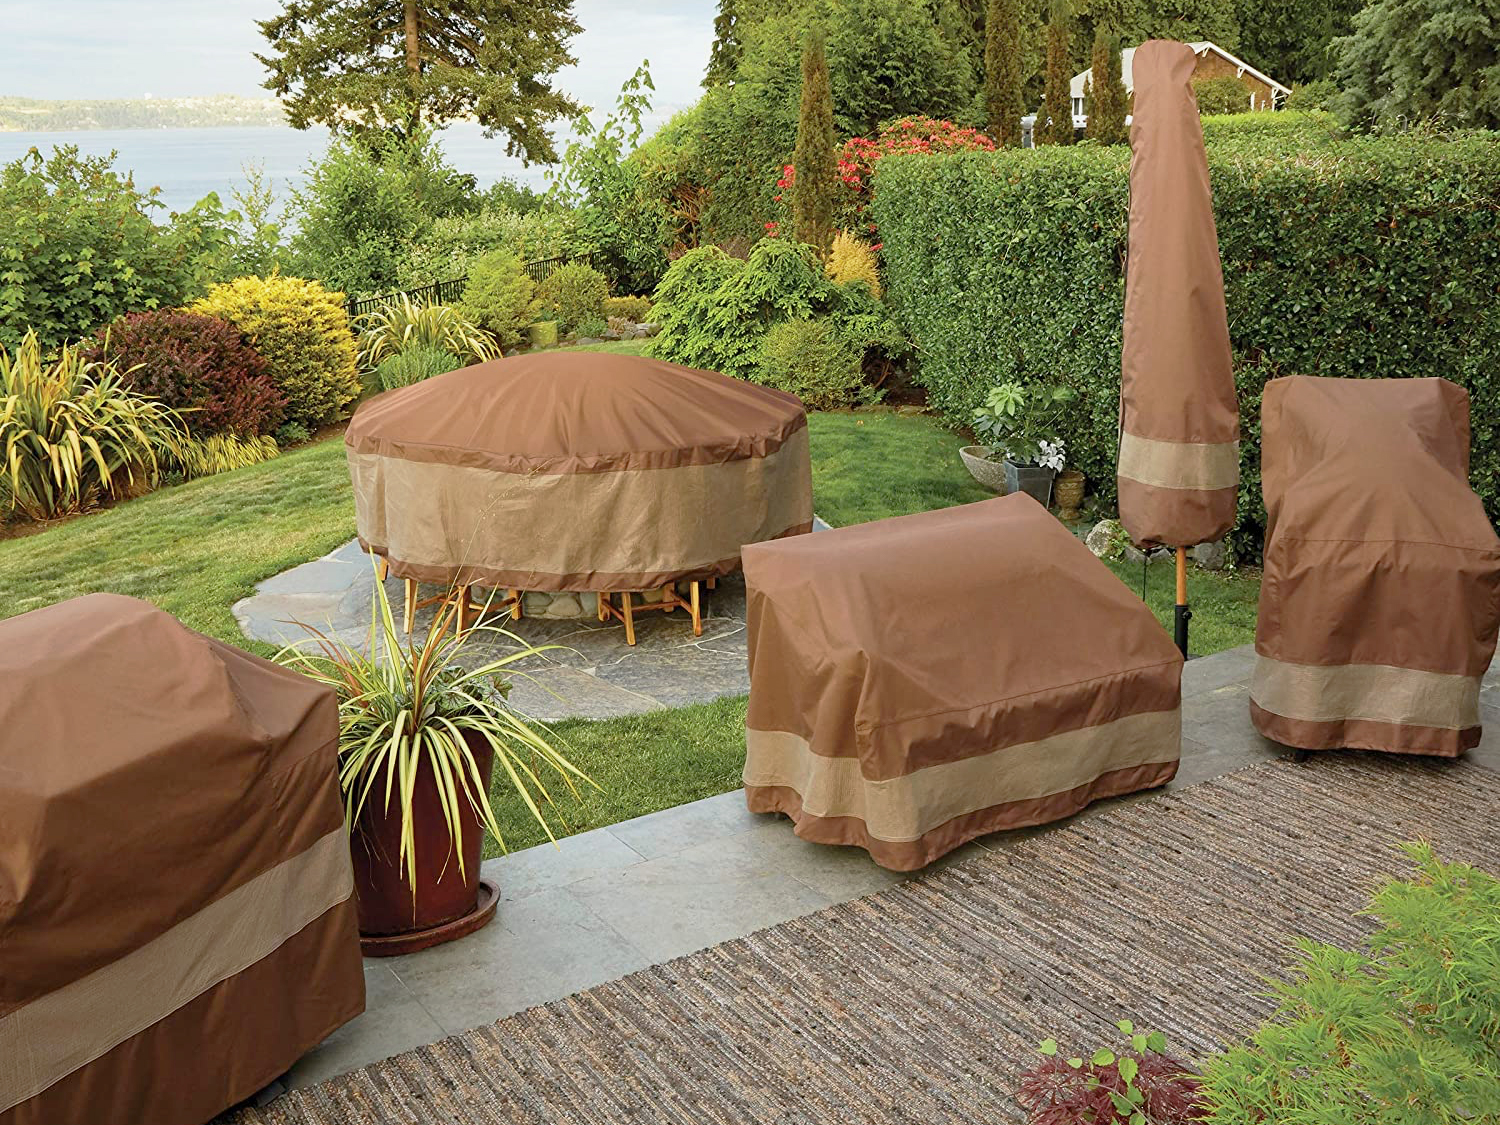 The Most Protective Outdoor Furniture Covers for Your Backyard in